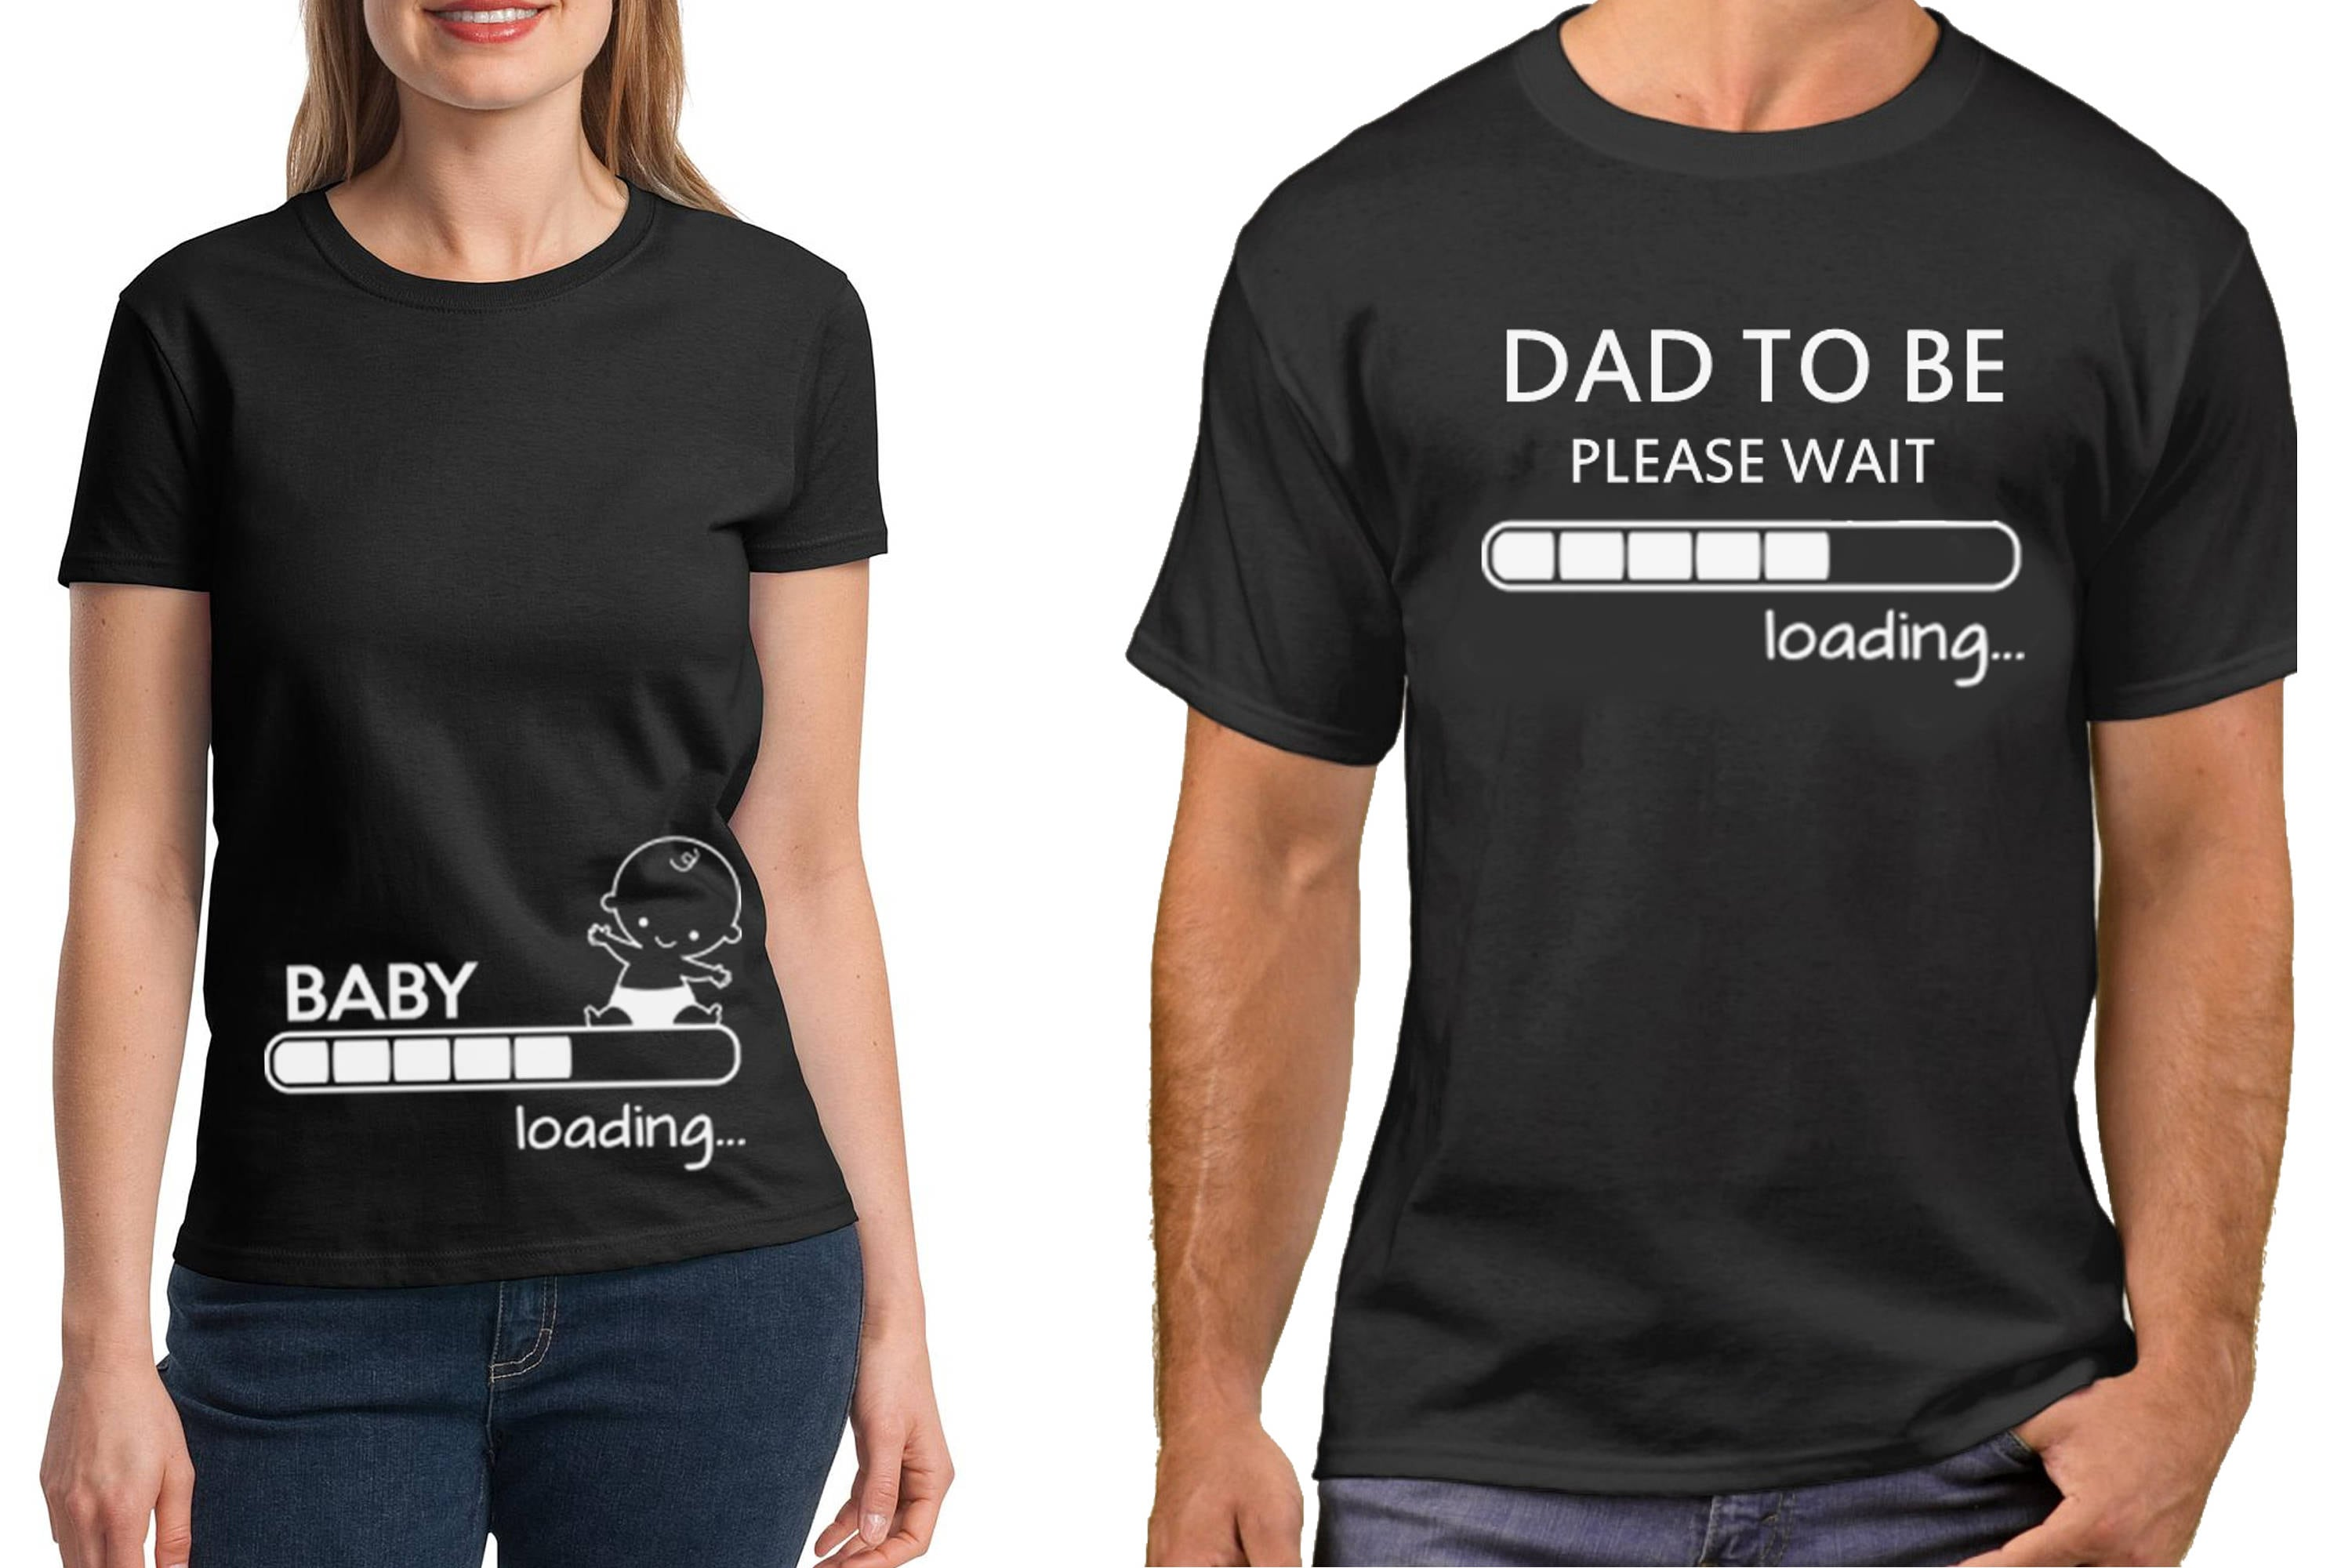 Pregnancy funny couple t shirts baby loading dad to be for Baby custom t shirts